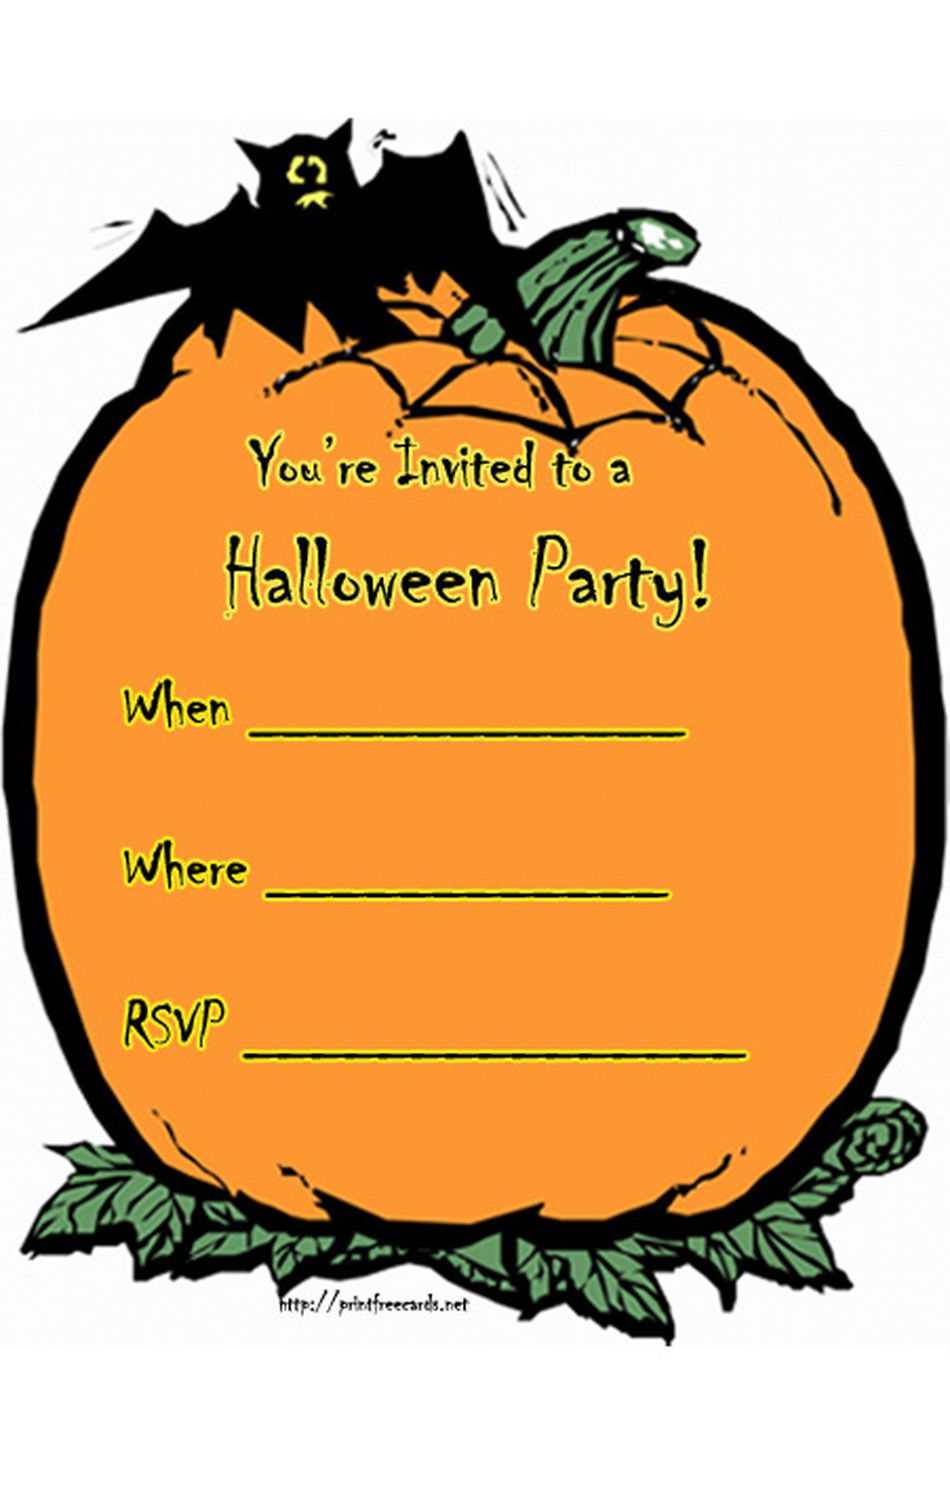 21 free halloween invitations that you can print pumpkin halloween invitations from print free cards stopboris Images